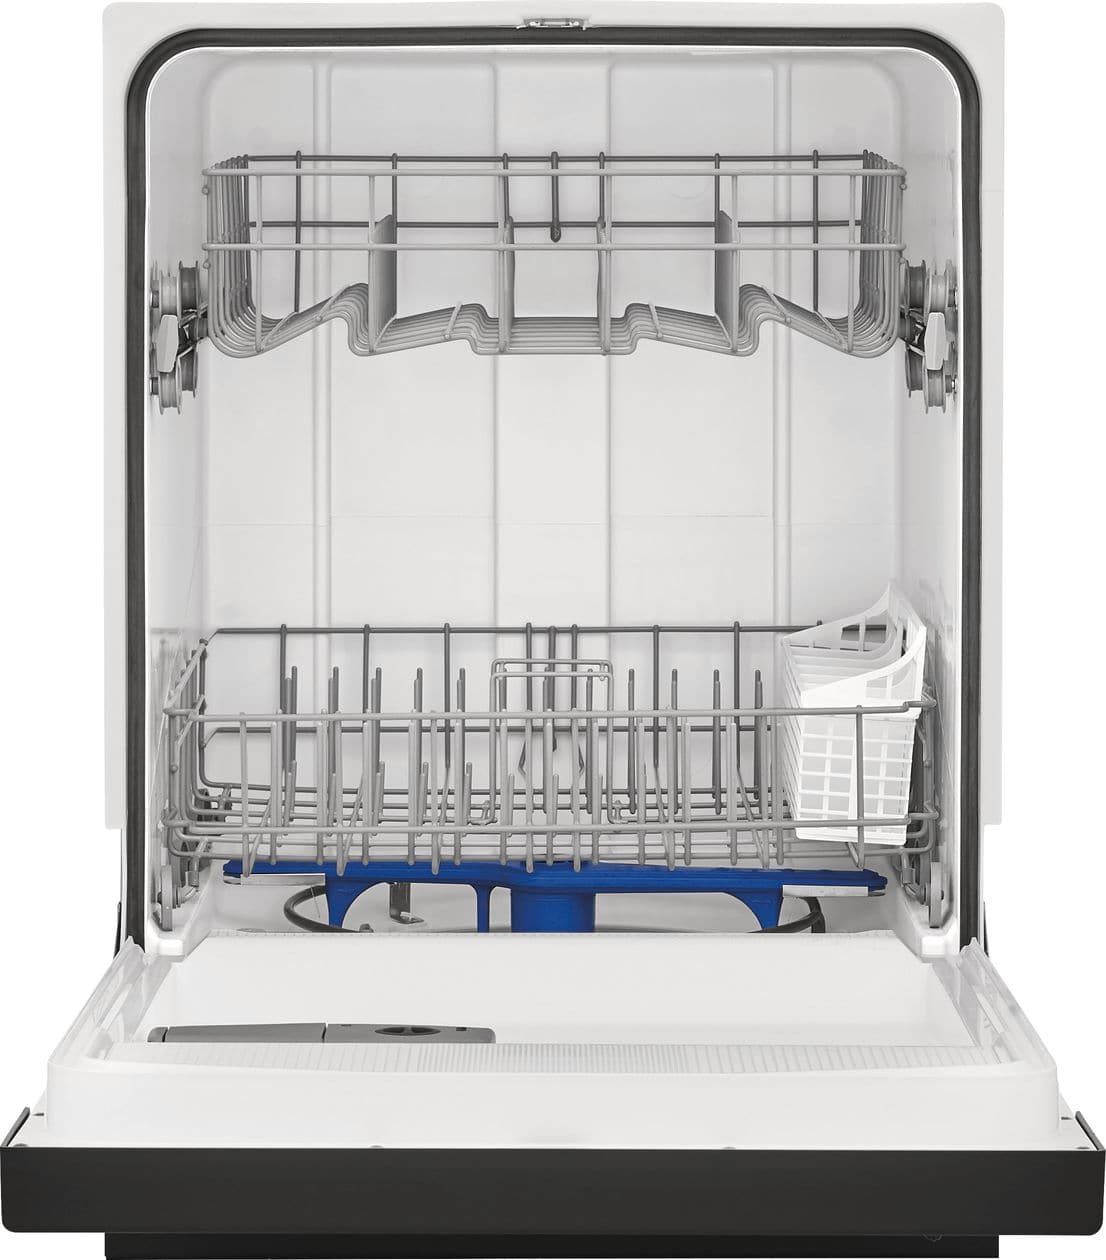 "Model: FBD2400KS | Frigidaire 24"" Built-In Dishwasher"